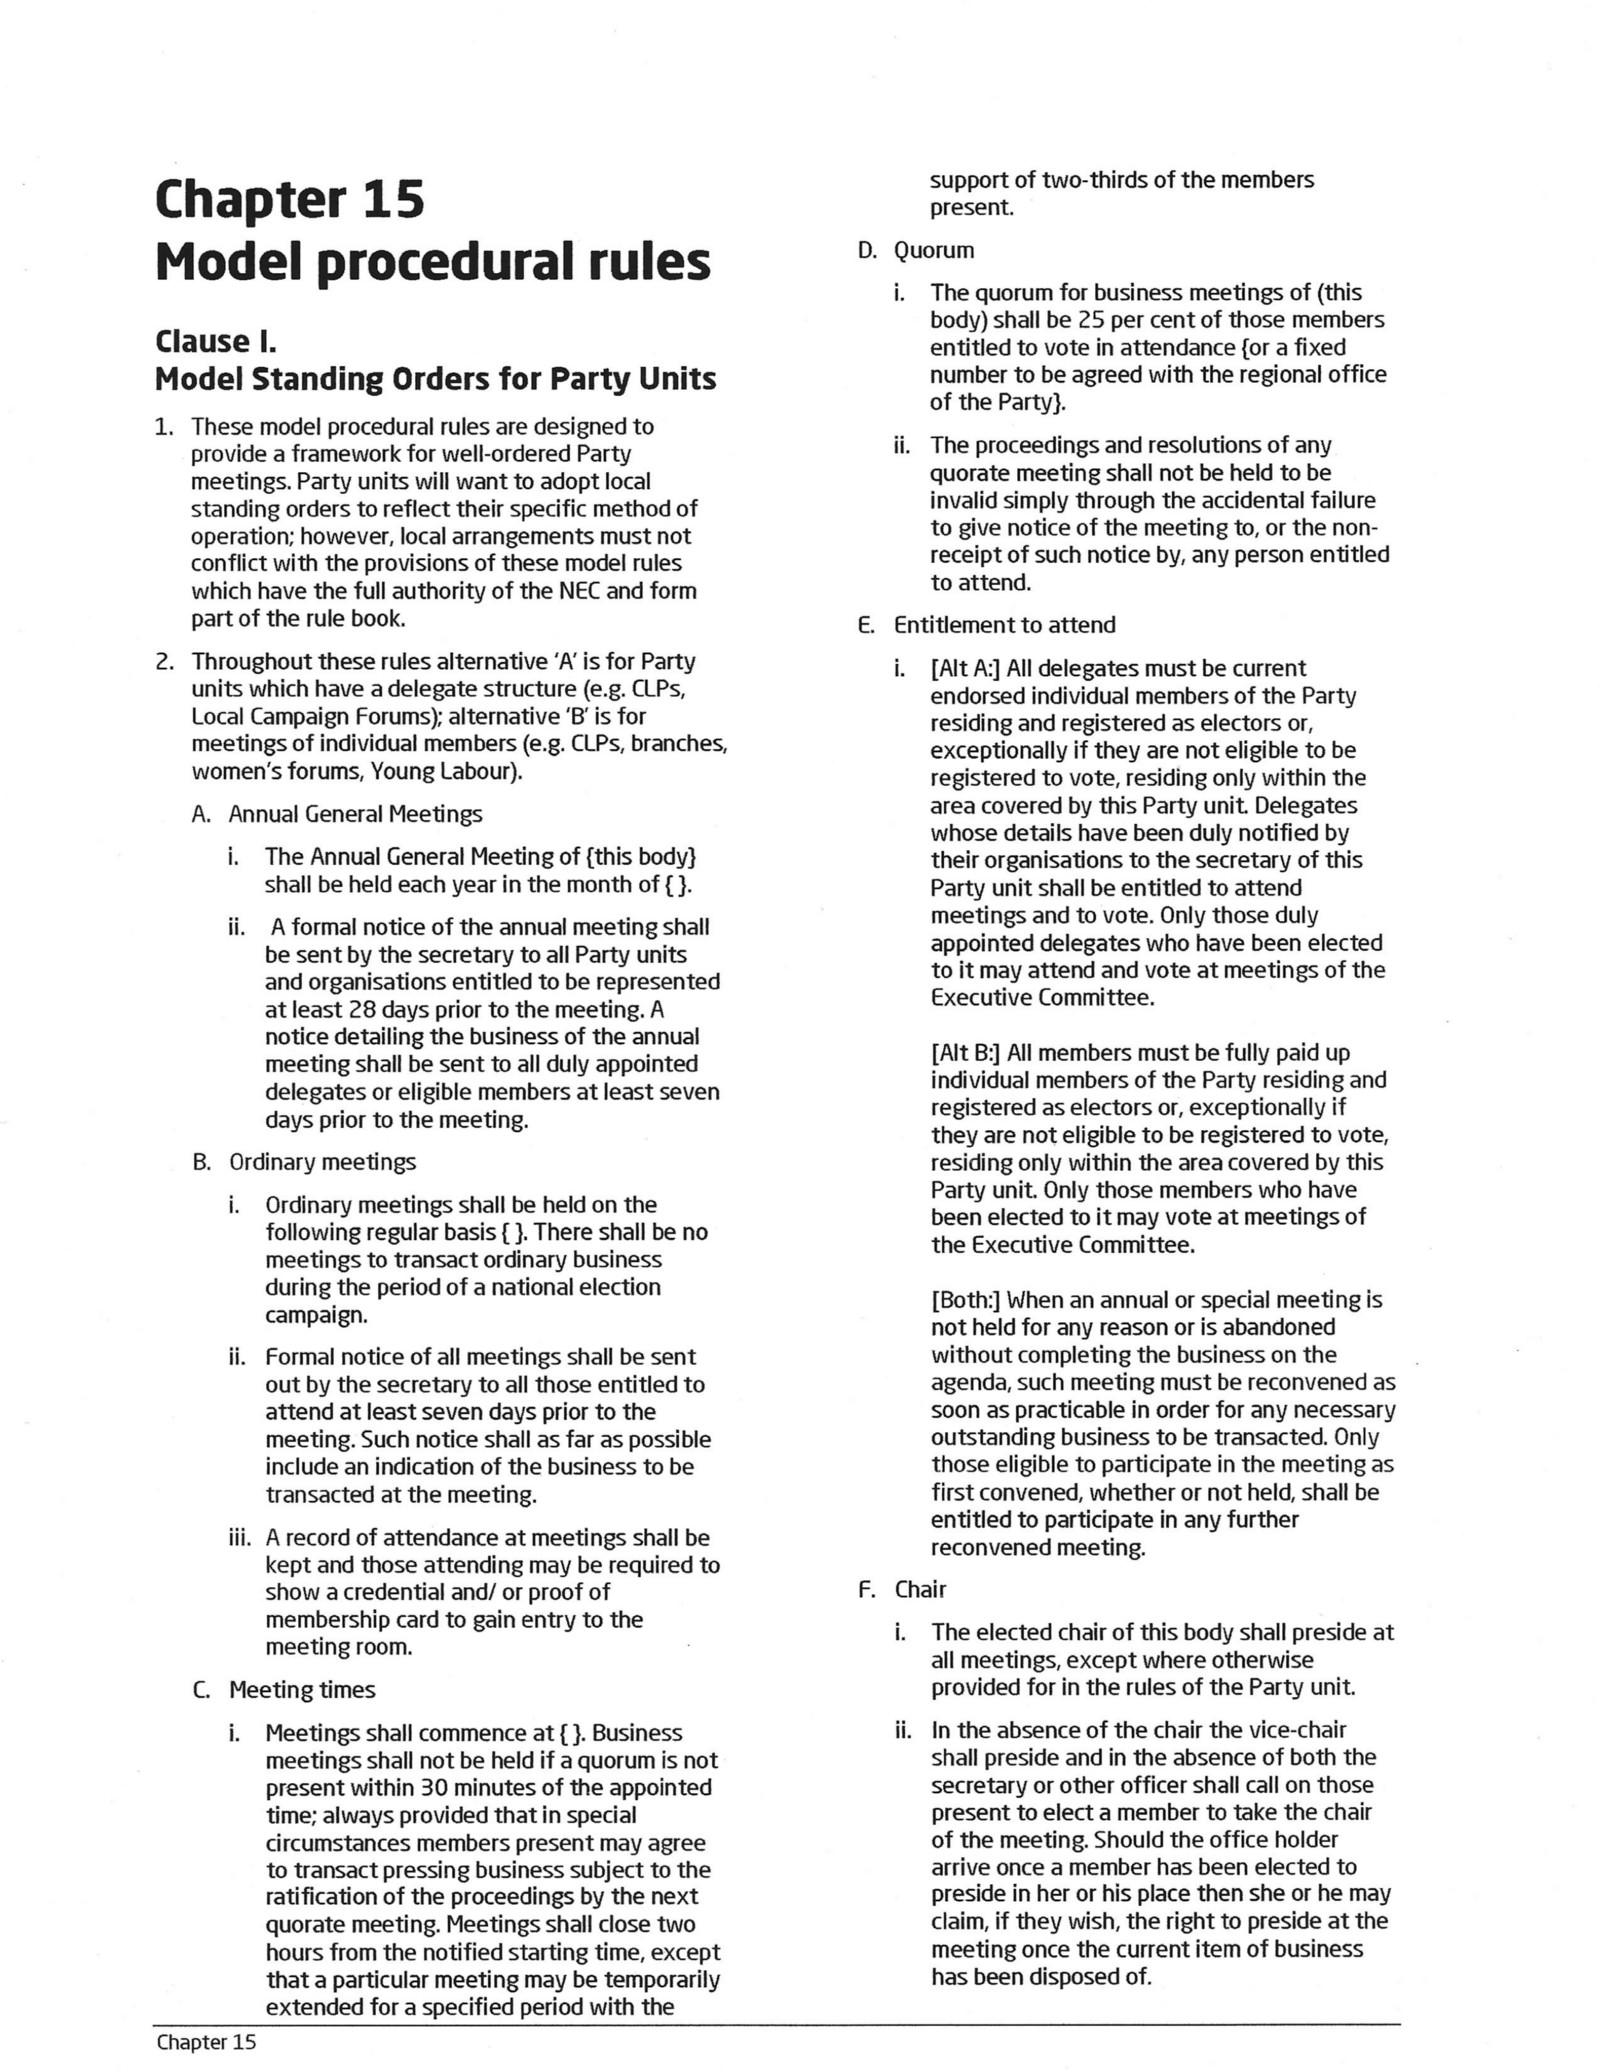 labour party rule book 2016 chapter 15 model procedural rules pp 5658